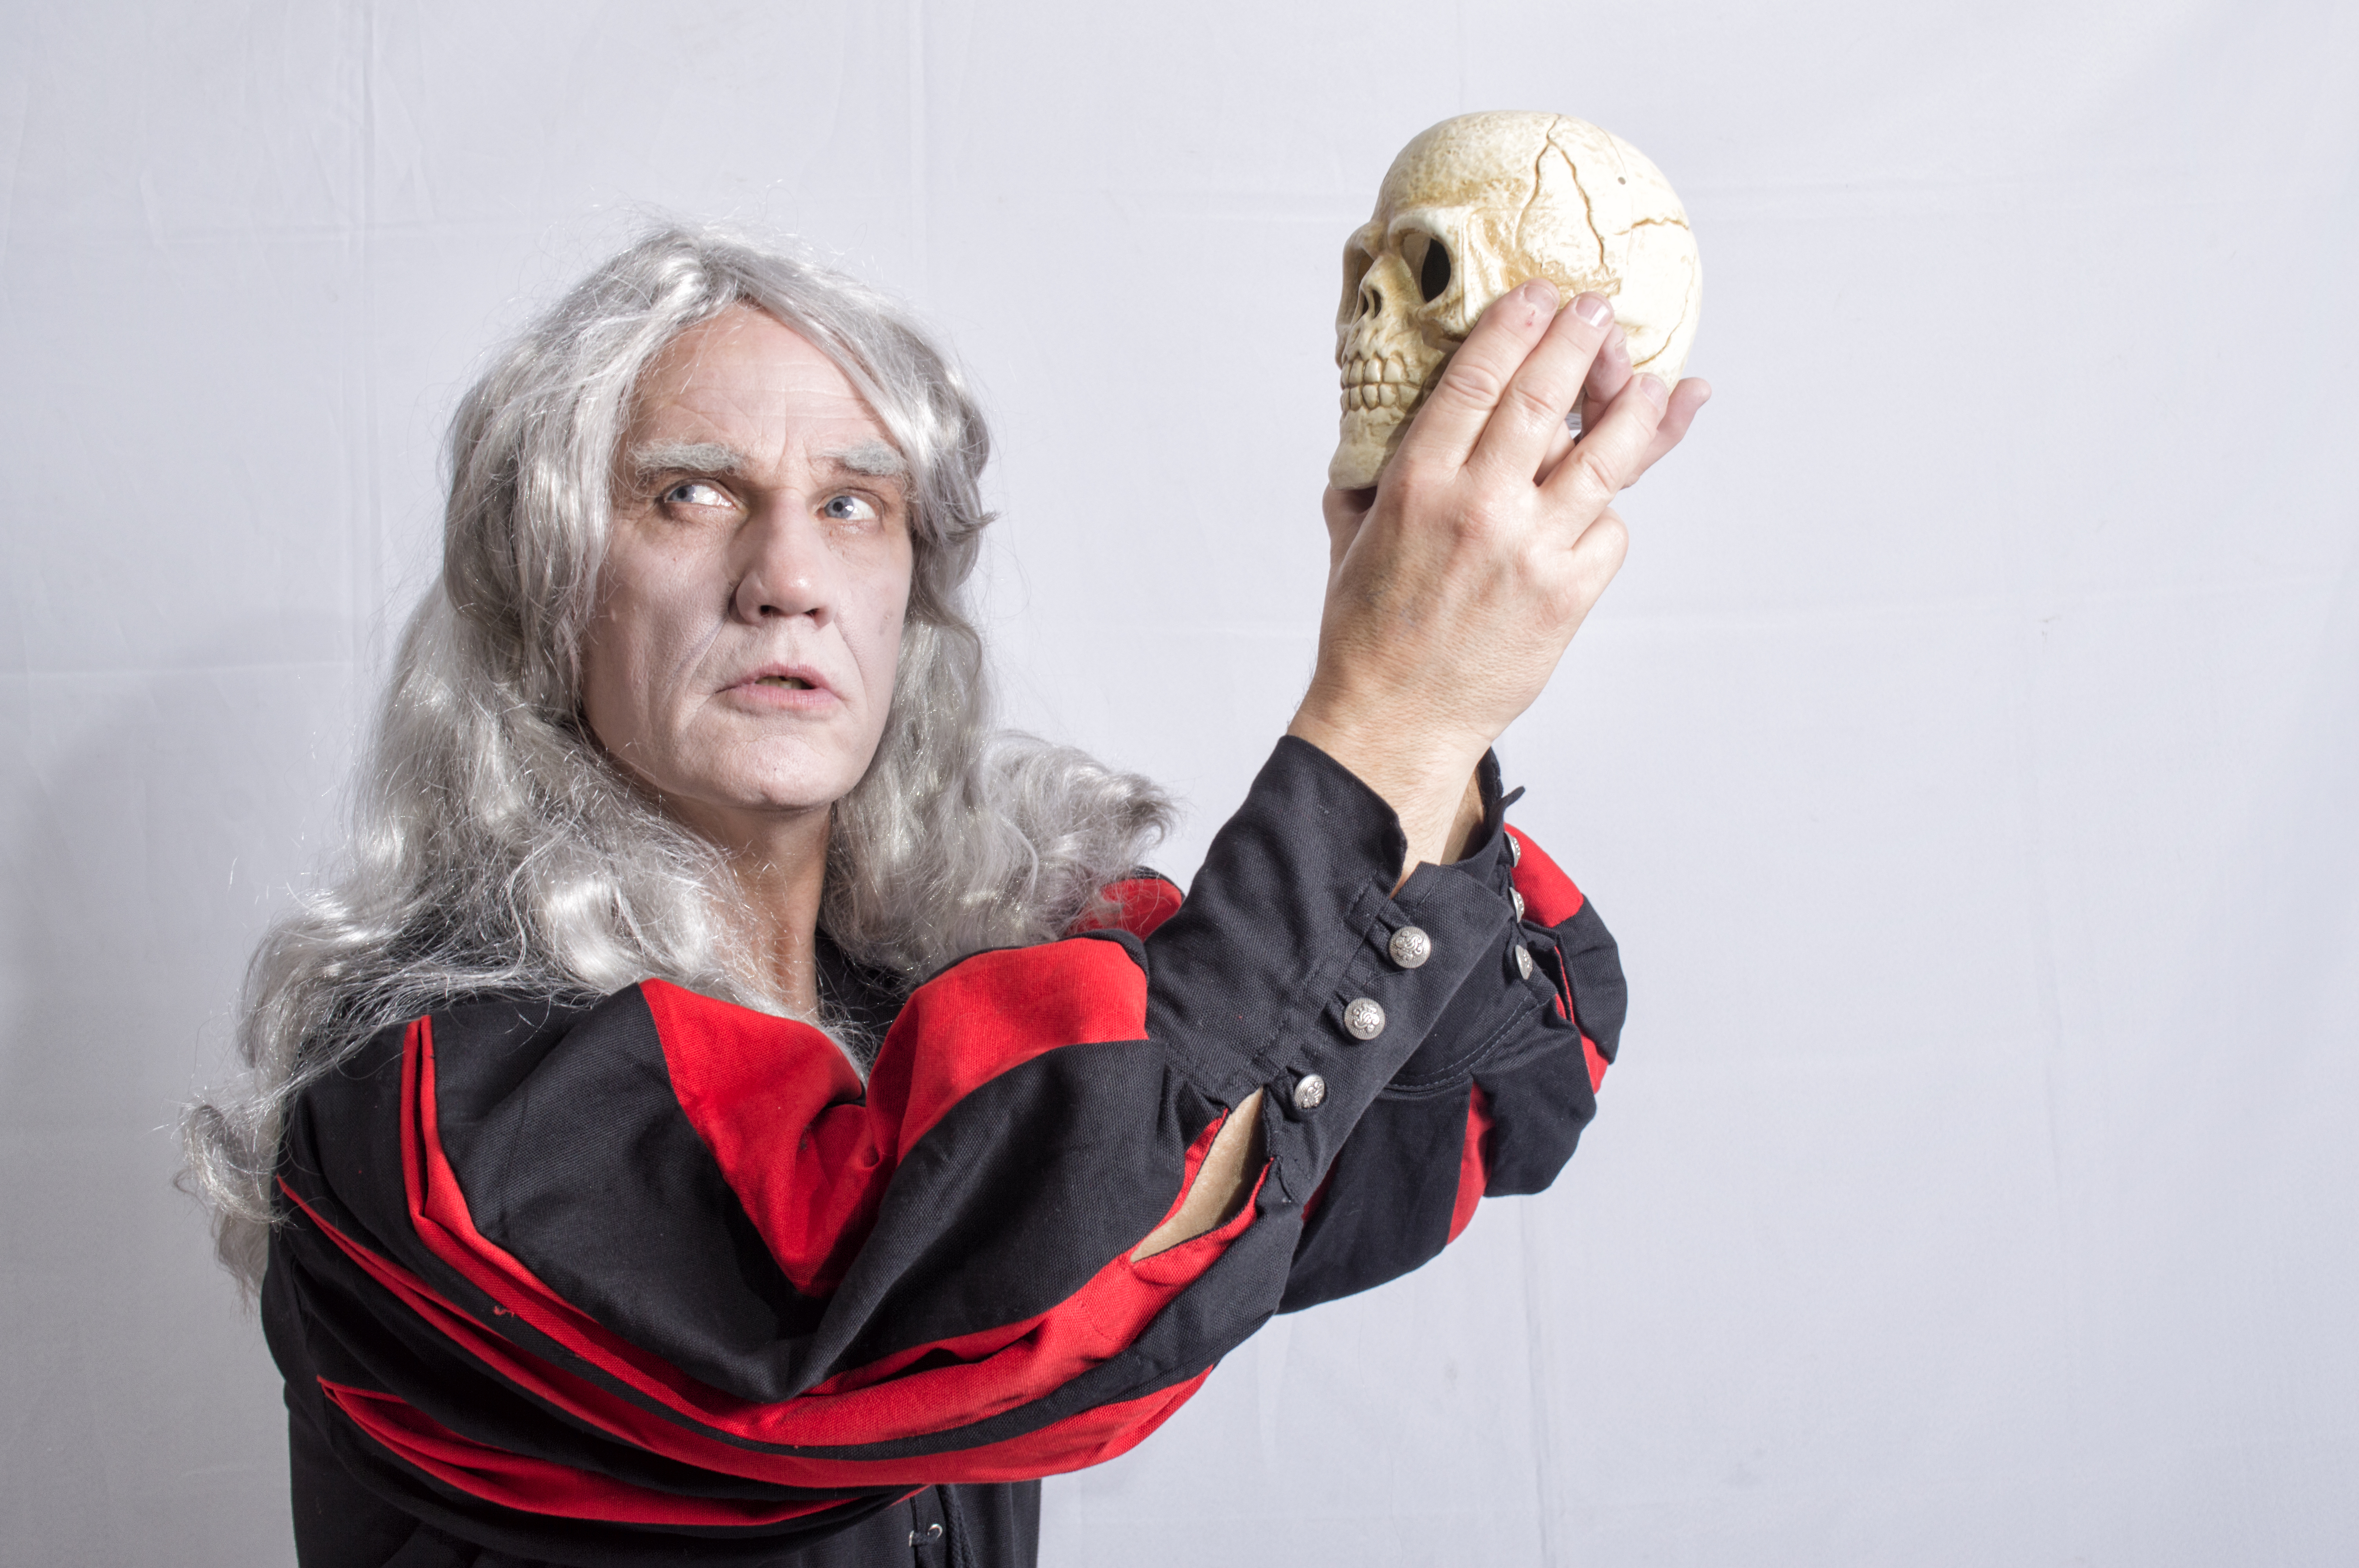 Mature man dressed as Hamlet holding a skull